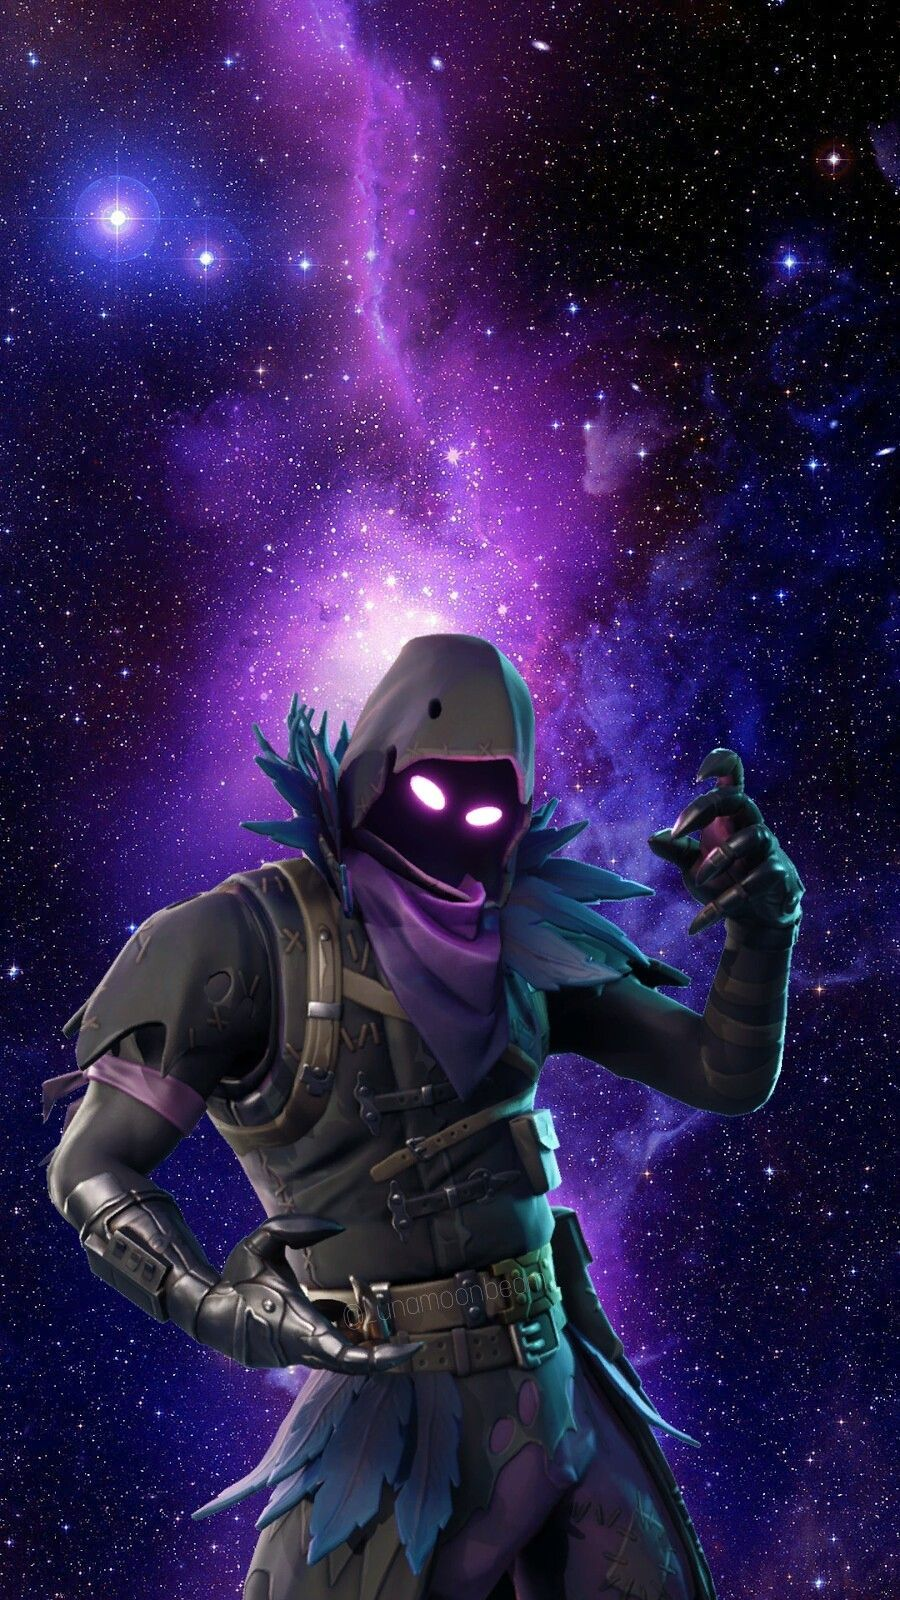 Hd Fortnite Wallpapers Video Games Wallpaper Iphone Wallpaper